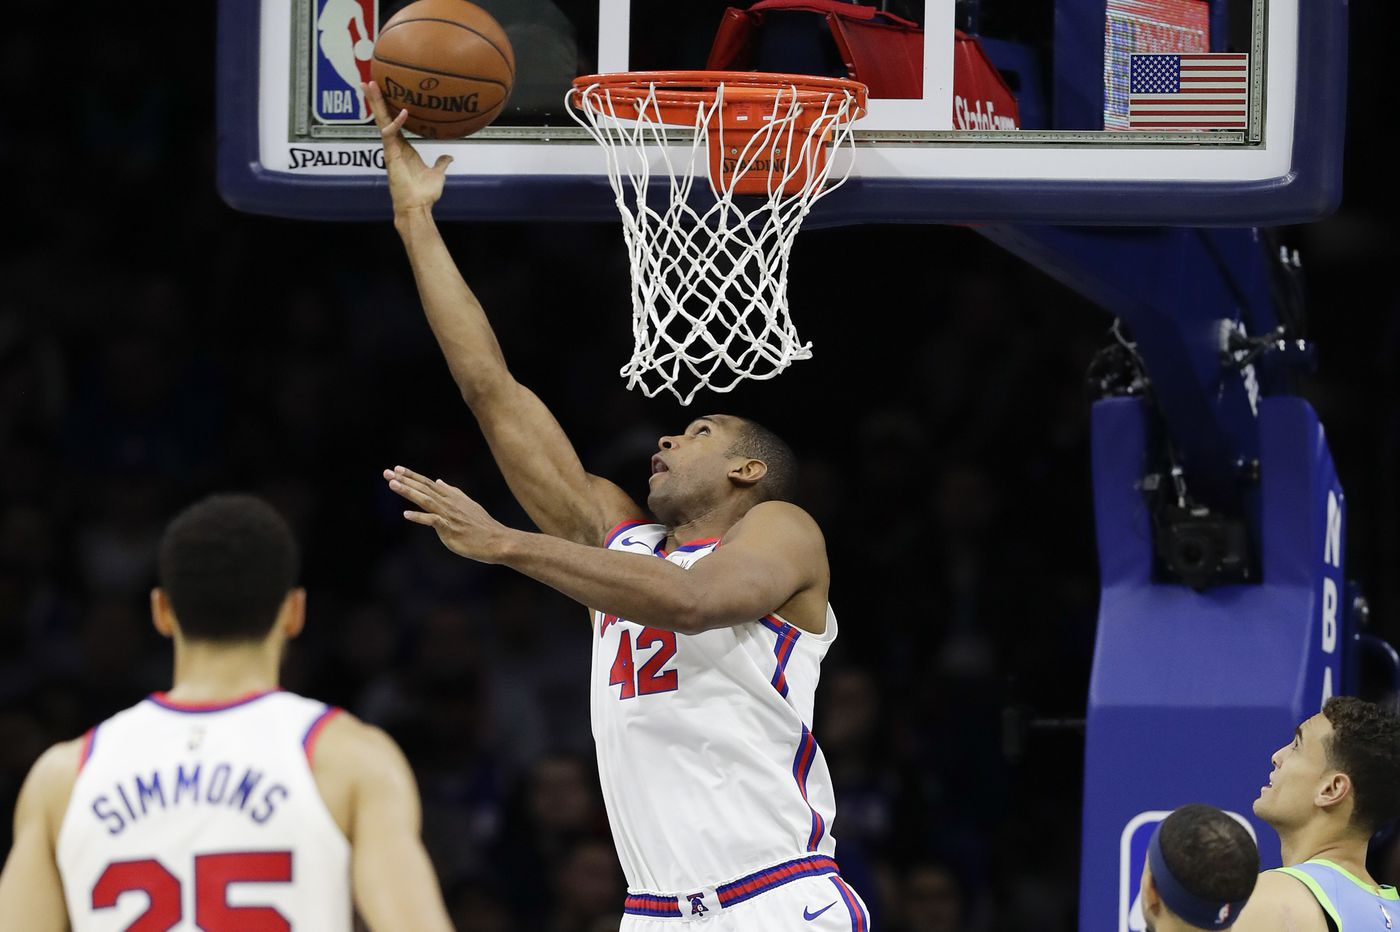 Sixers' Al Horford lacking opportunities to show his full offensive skill set